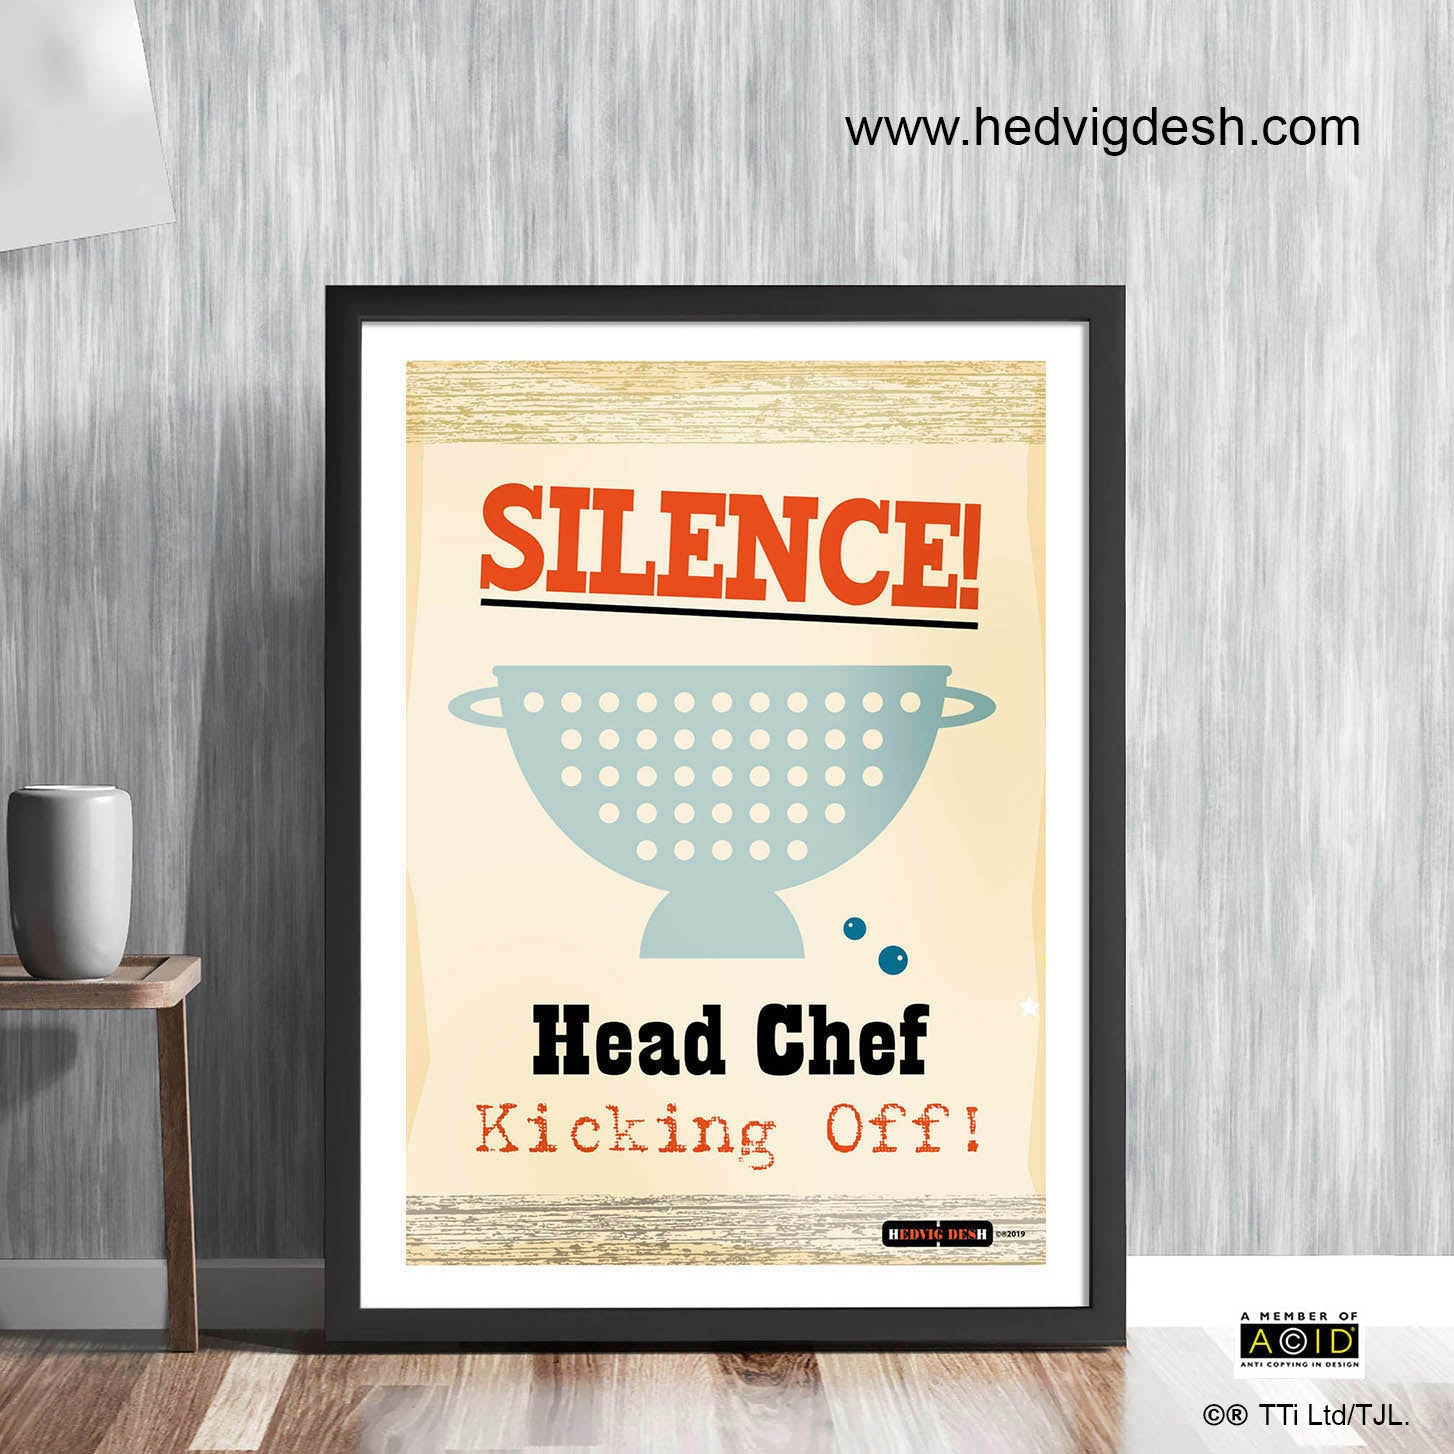 Retro Scandinavian Kitchen cookery print illustration by Hedvig Desh collection - 'Unframed'